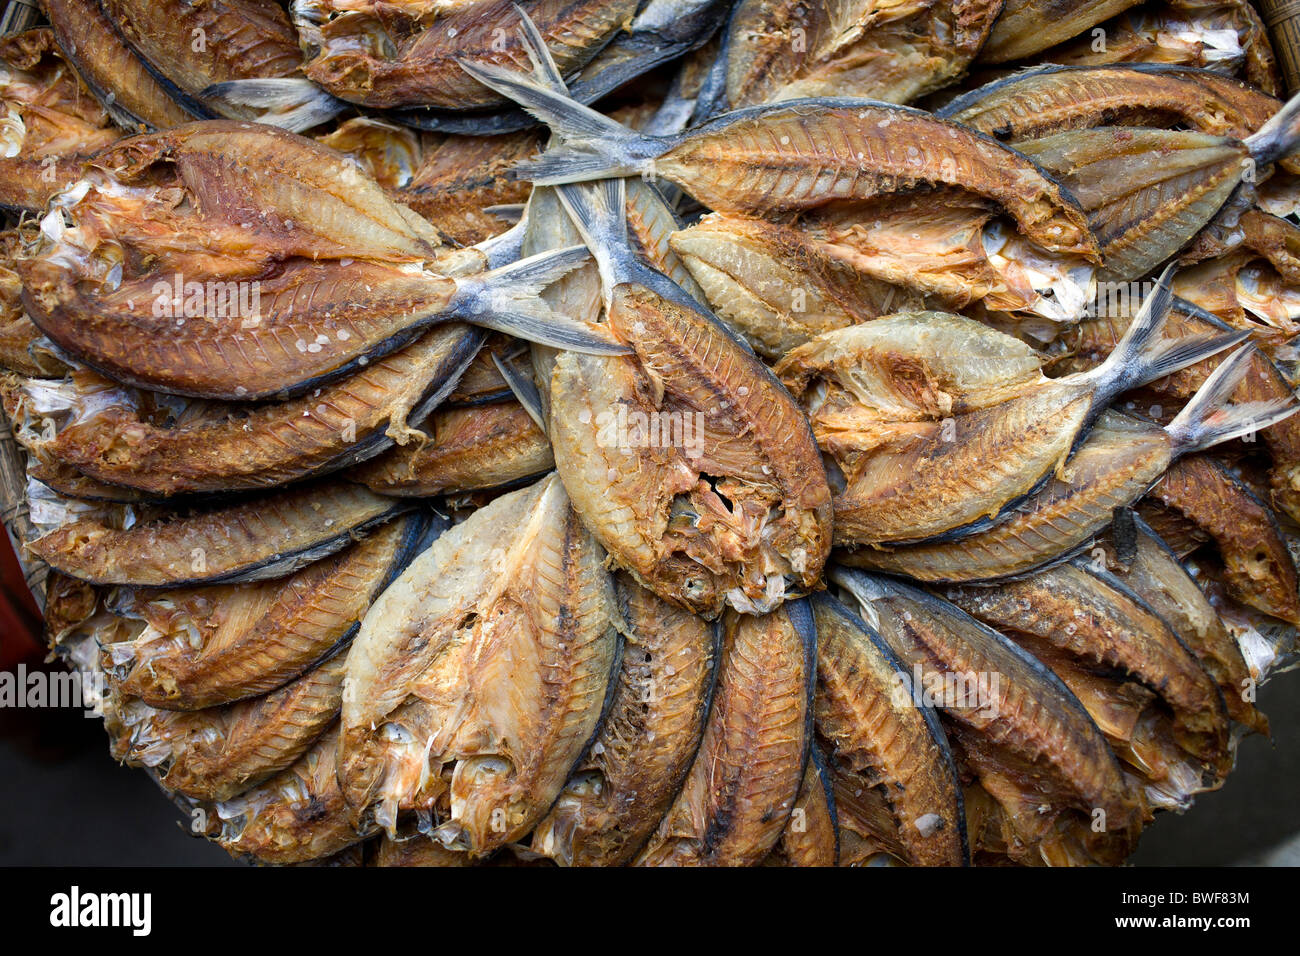 tuyo or dried fish for sale at a market in roxas